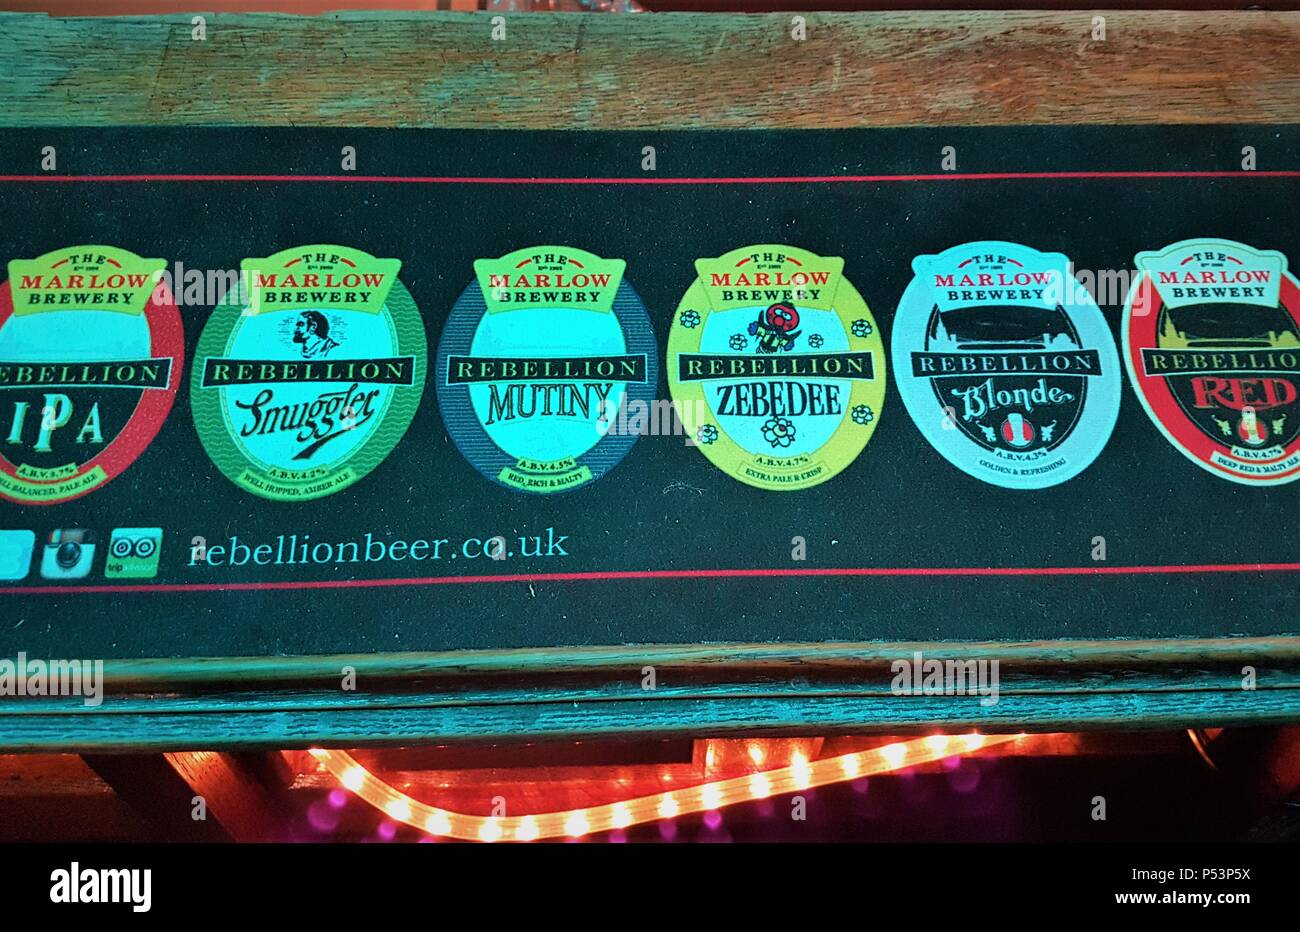 The Marlow Brewery / Rebellion Beer Company bar drip rubber mat on a bar displaying Rebellions beer Stock Photo